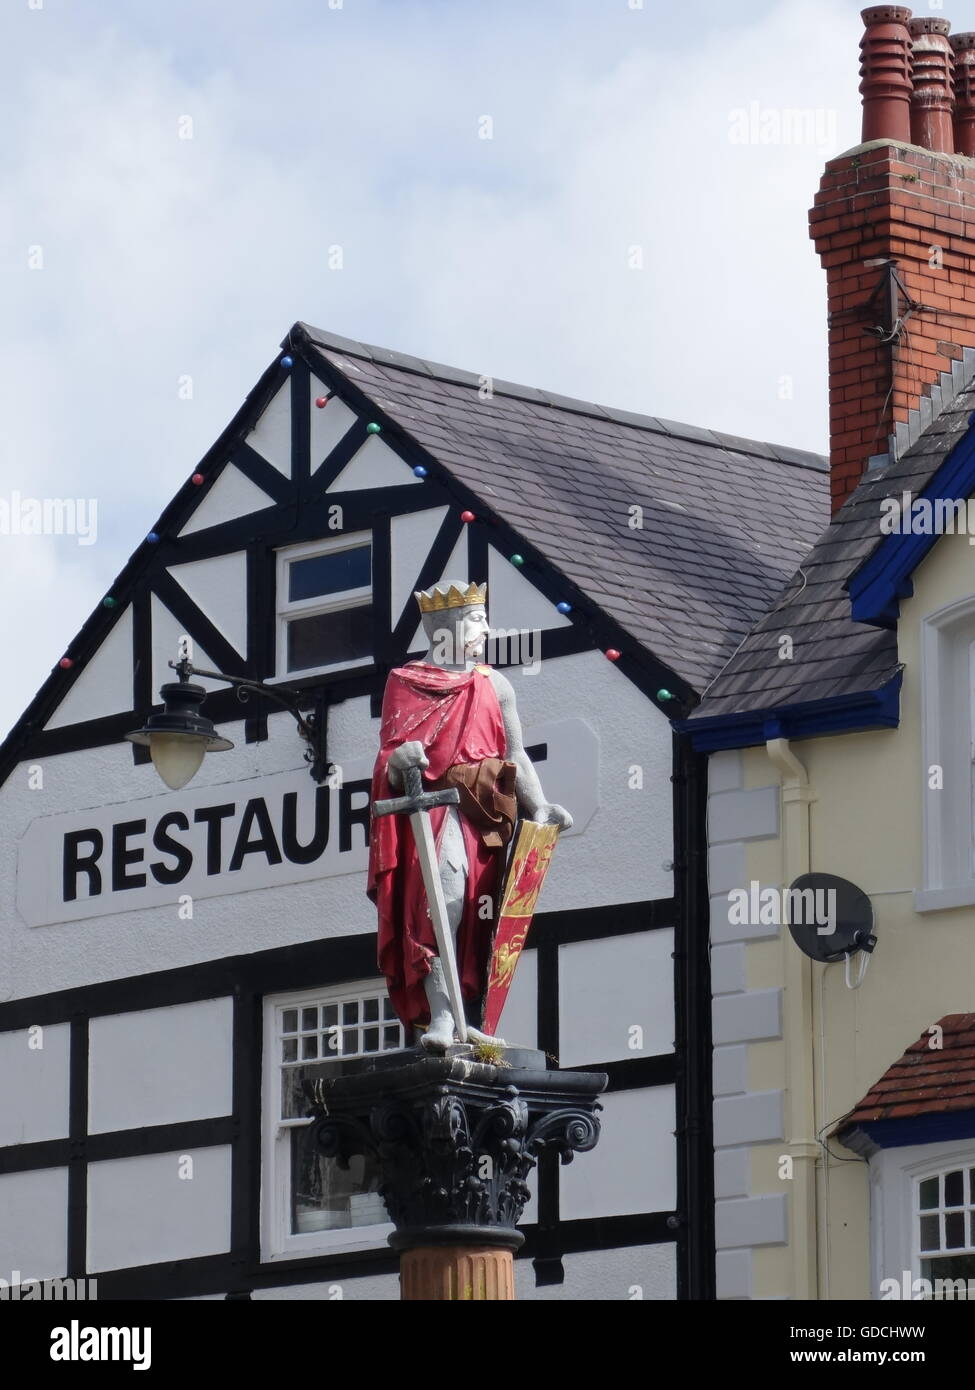 King Arthur statue in the medieval town of Conwy, Wales, - Stock Image